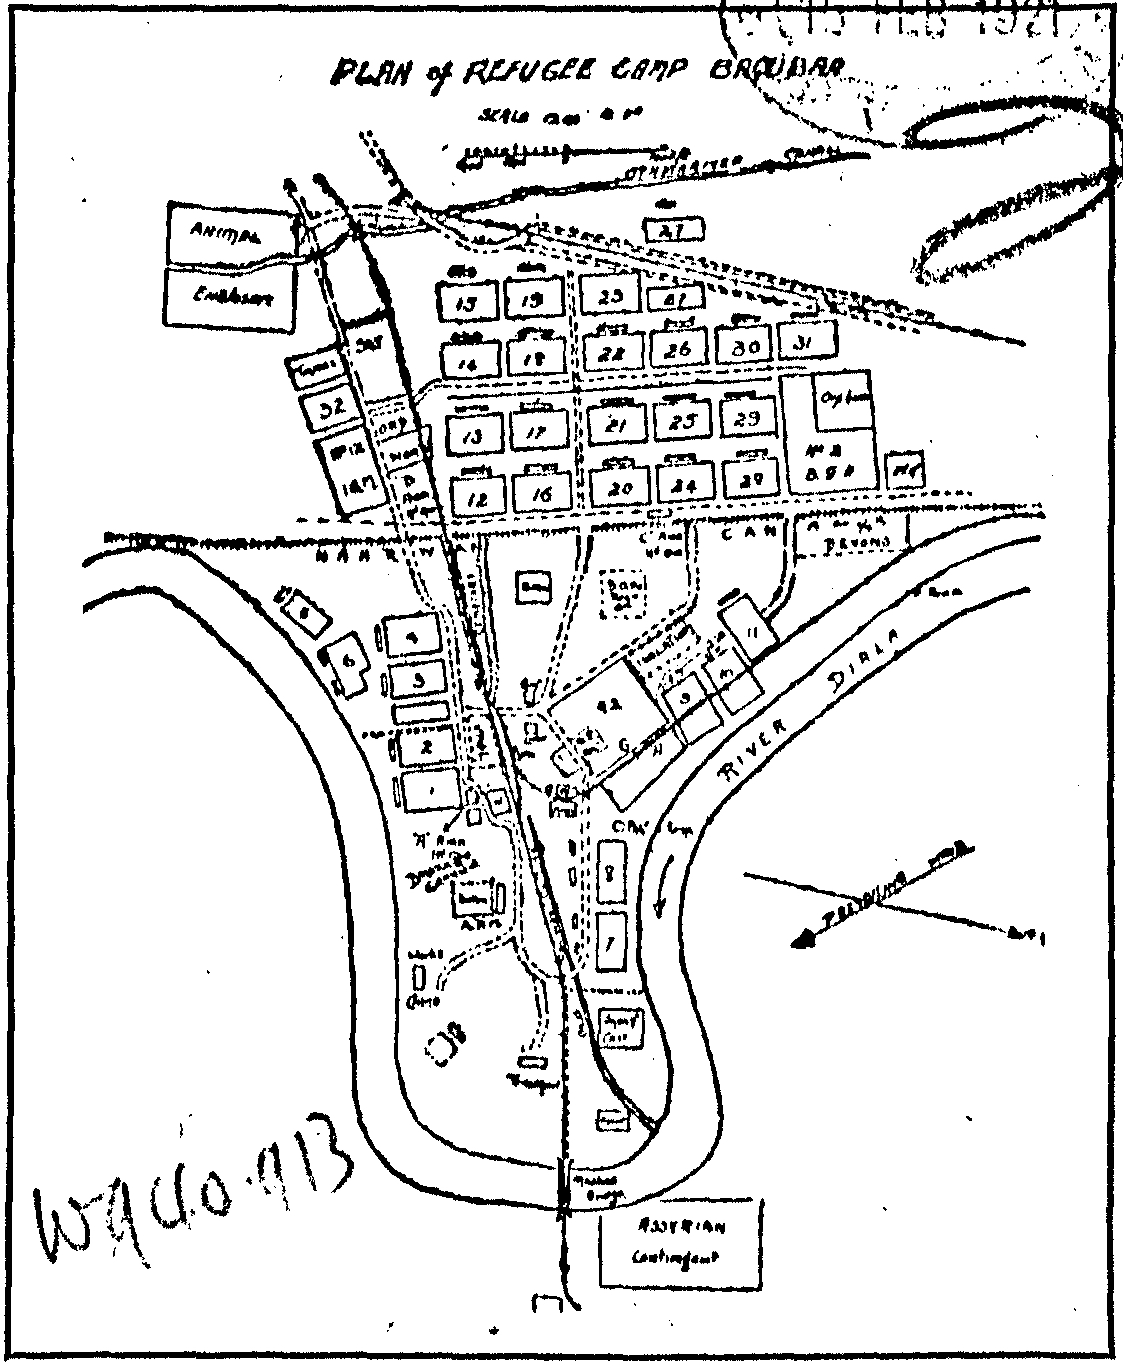 Plan of Refugee Camp Baqubah', frontispiece to H.H. Austin's book about the camp. The rectangles numbered 1–32 each accommodated roughly 1,250 refugees. West is (roughly) at the top of the plan. Of the crossed arrows, one points north and the other shows the direction of the prevailing wind.